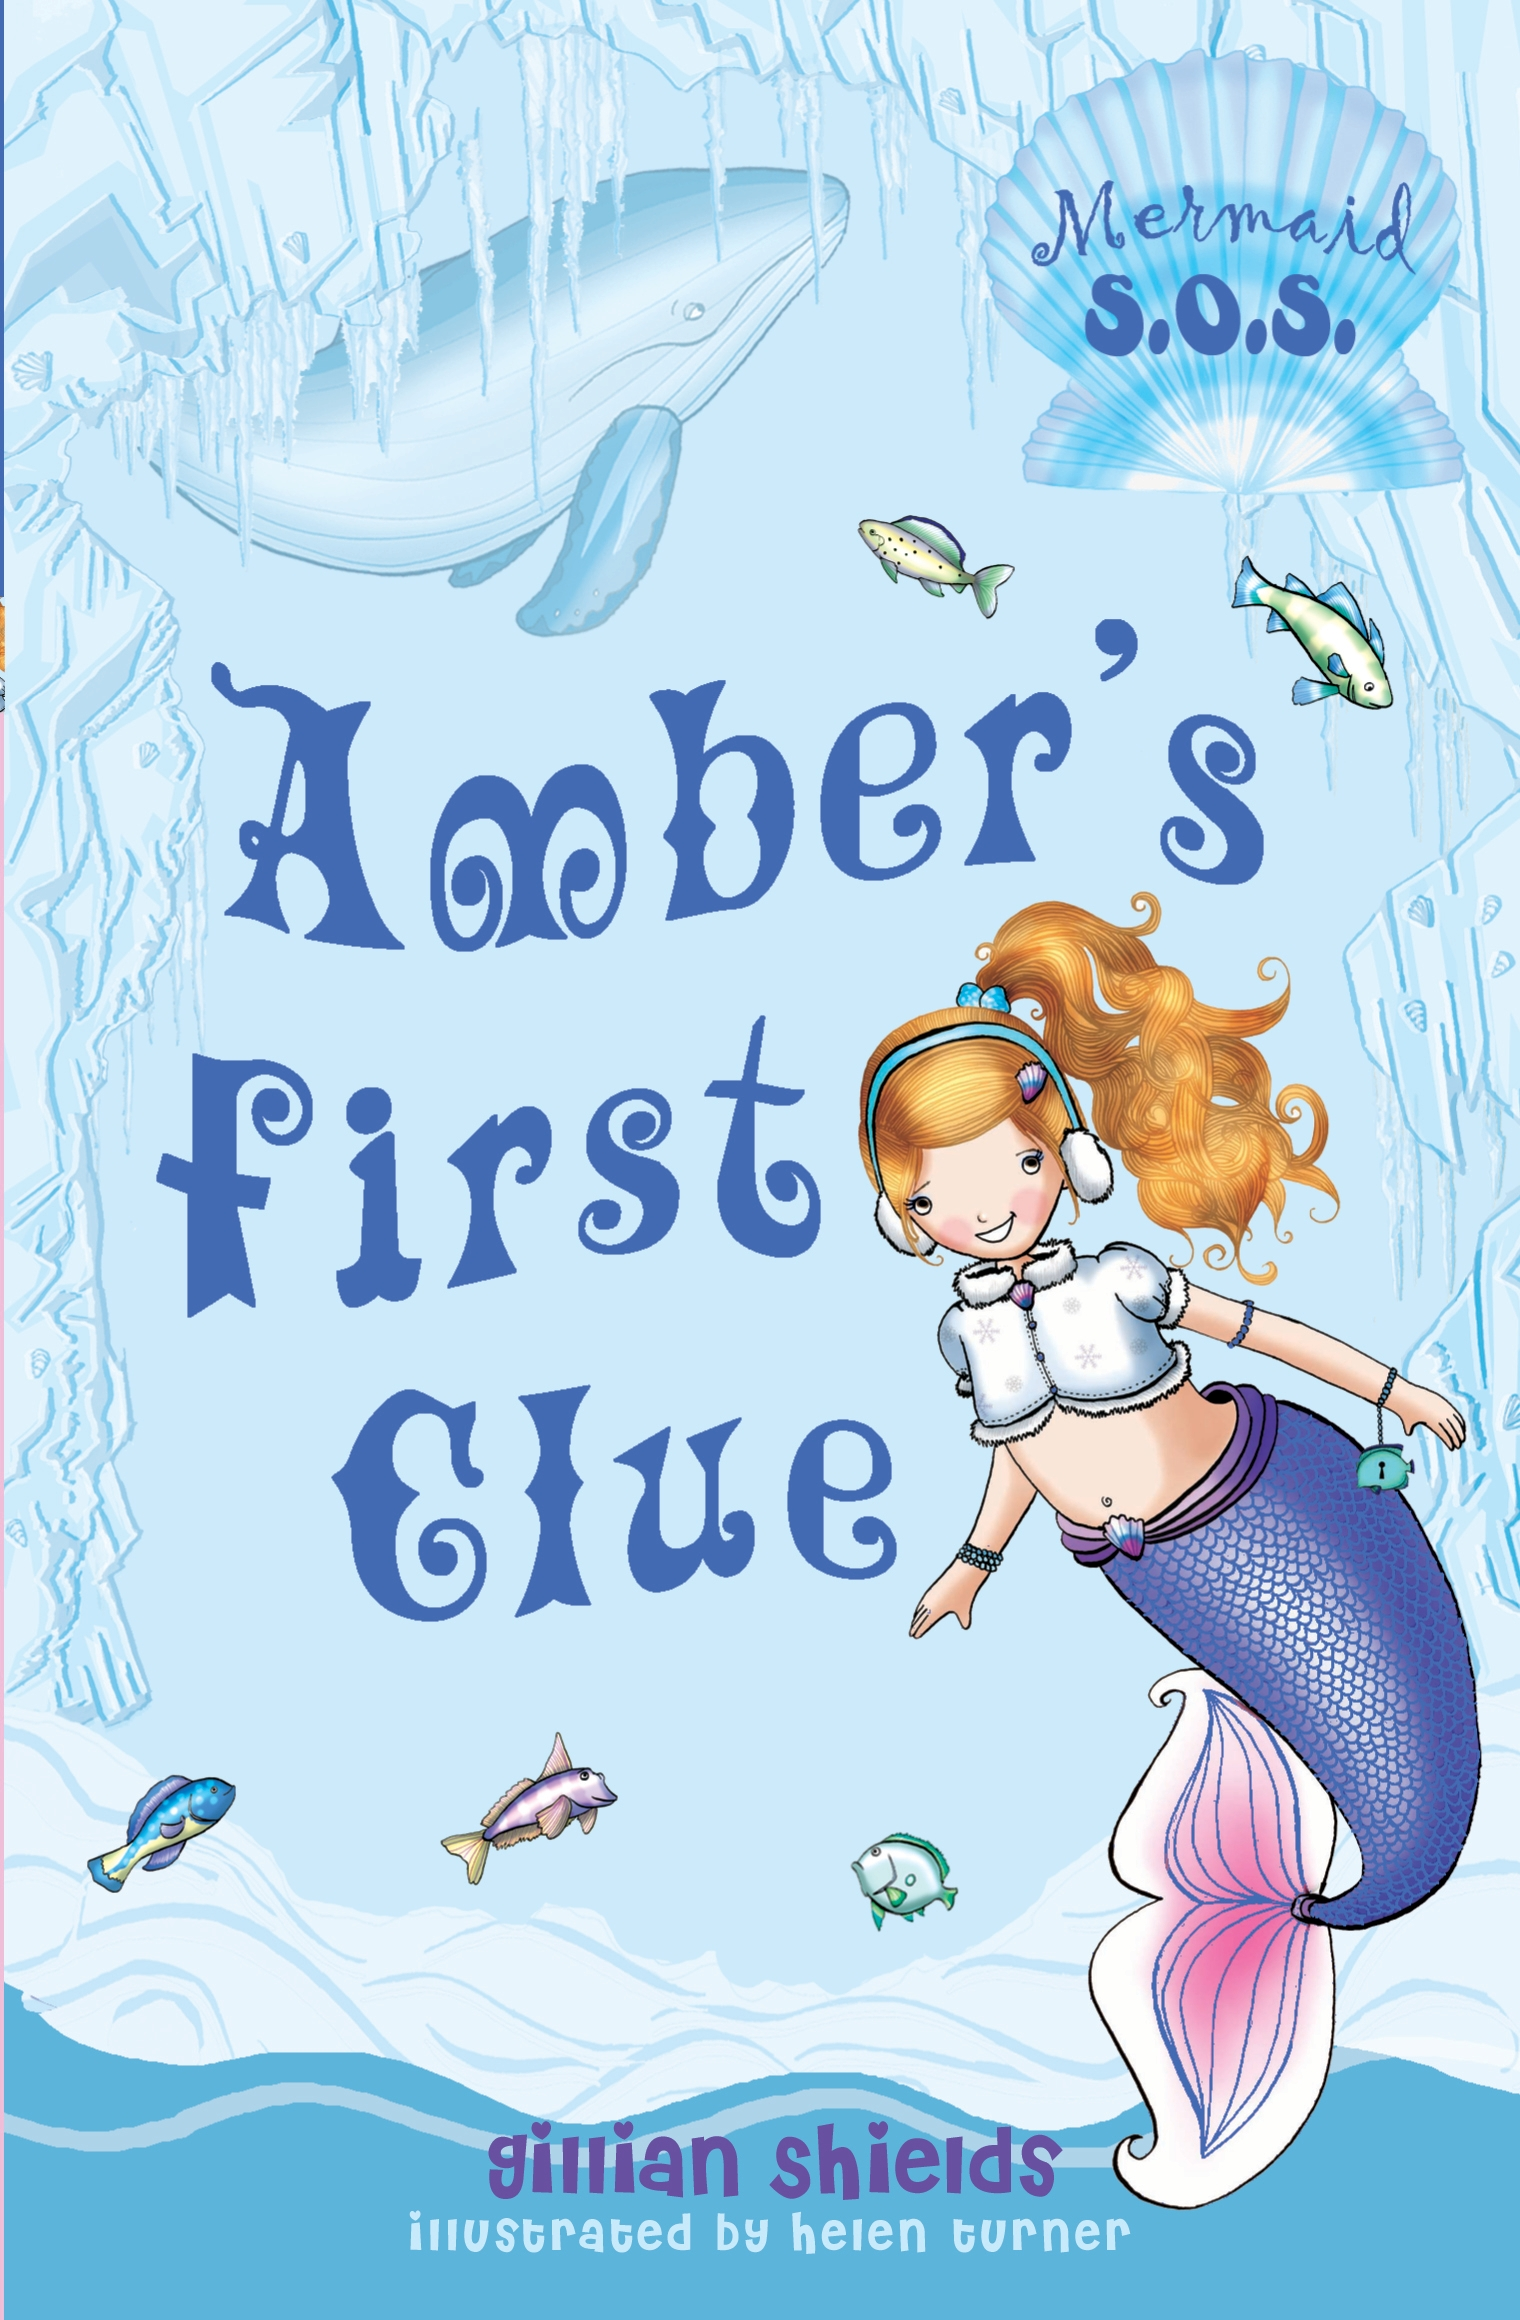 Amber's First Clue: Mermaid S.O.S.